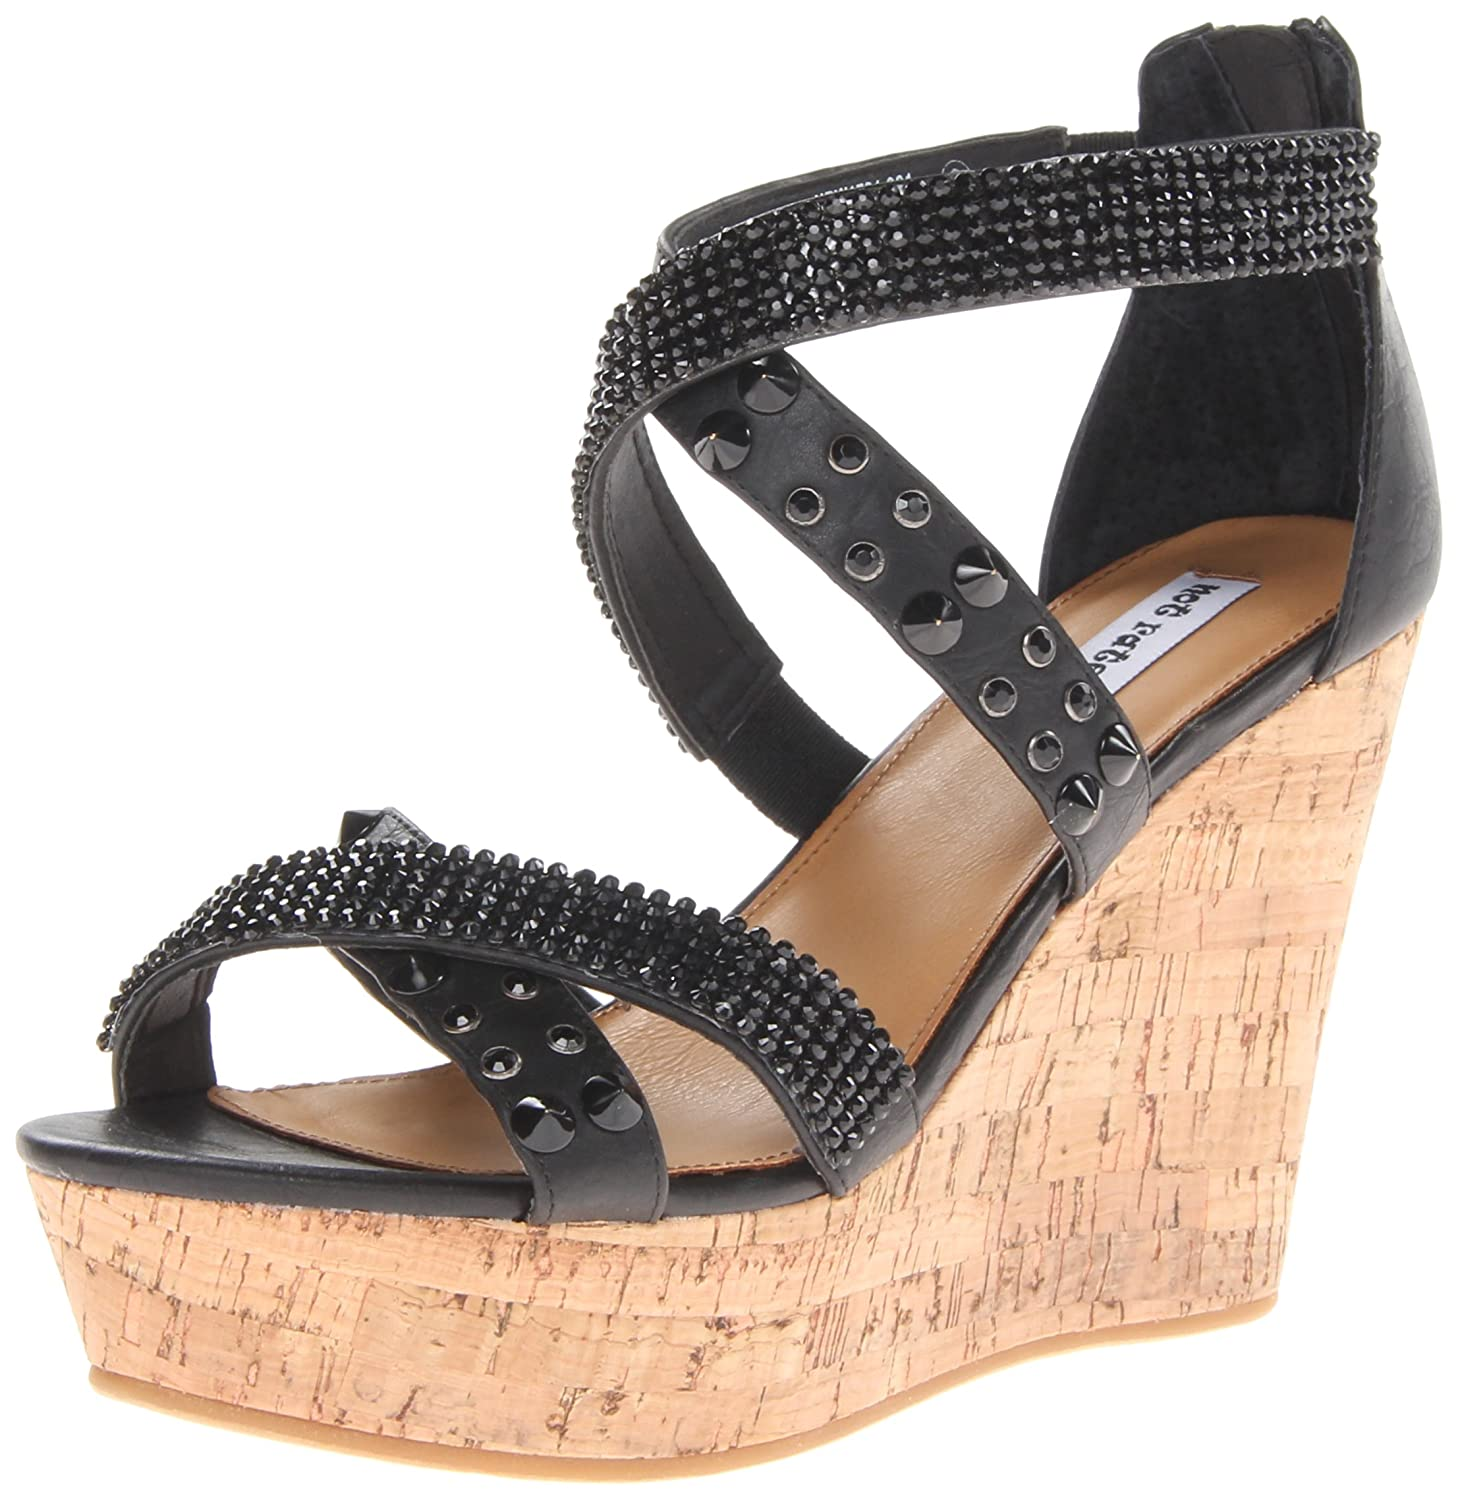 Not Rated Women's Cant Get Enough Wedge Sandal B00GSIIWGM 8.5 B(M) US Black